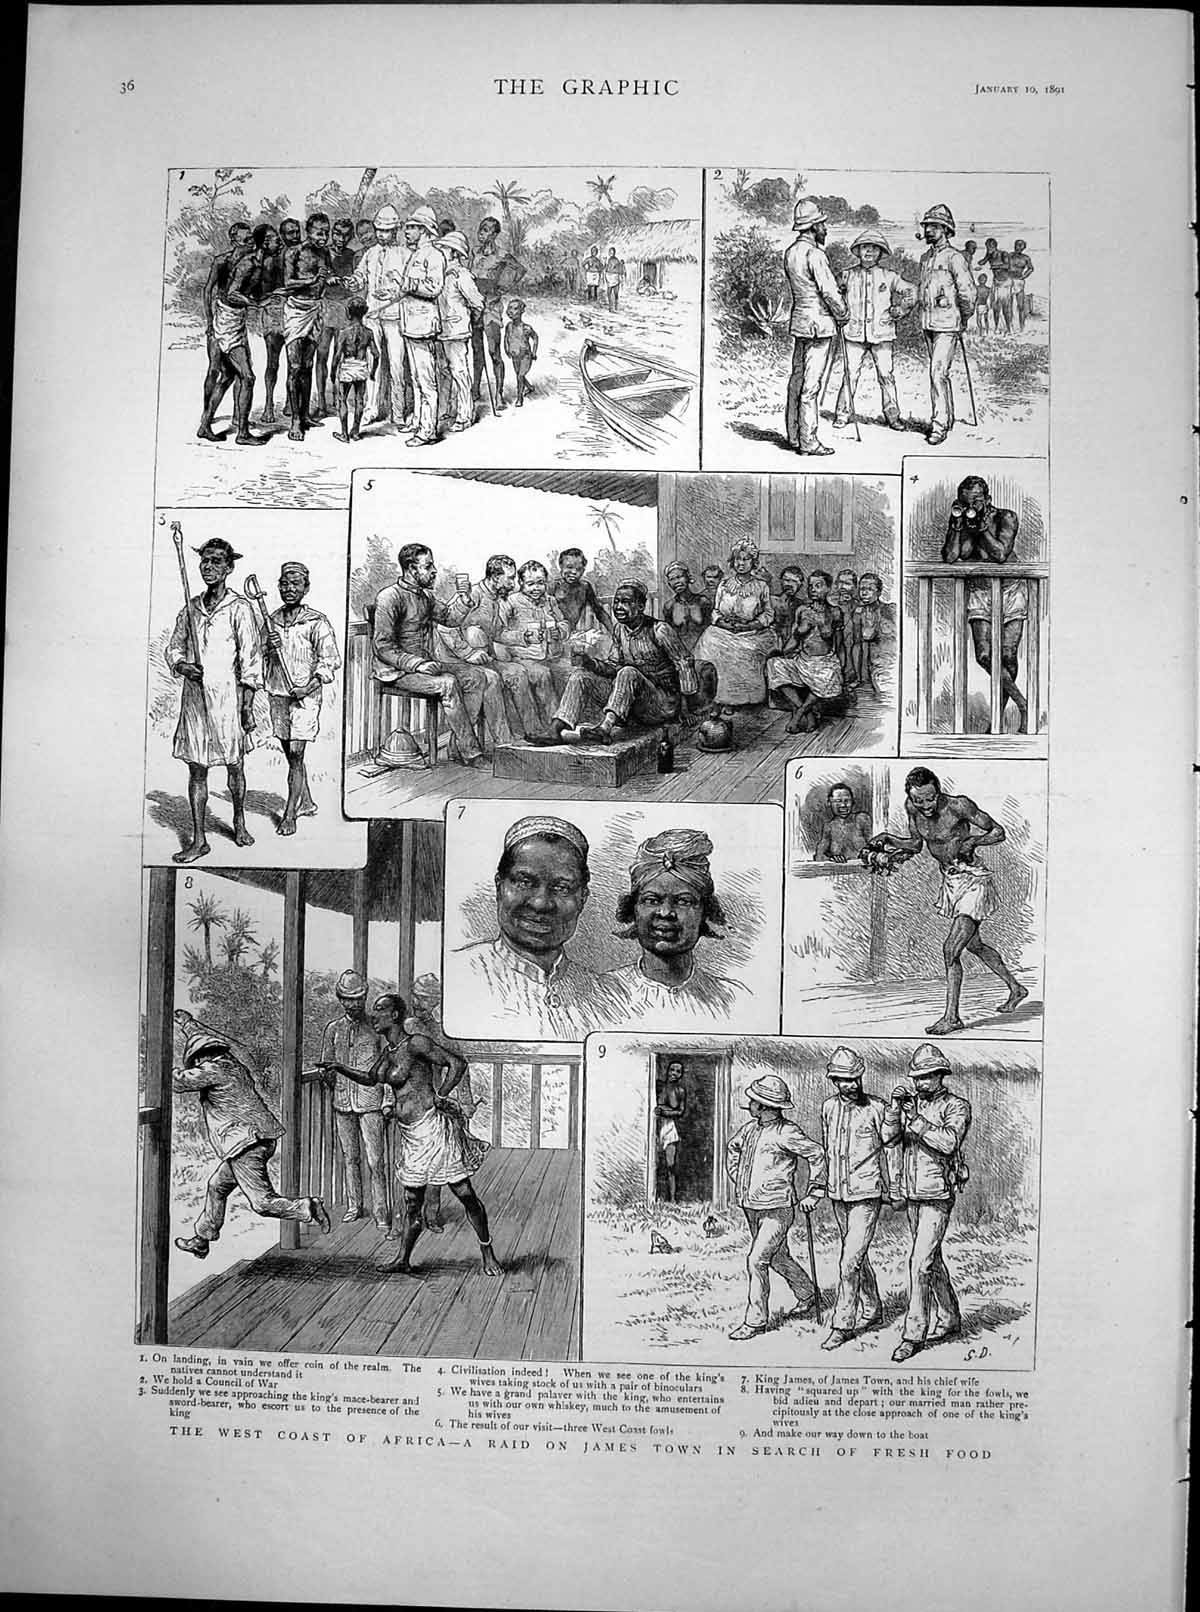 [Print West Coast Africa Raid James Town Search Fresh Food 1891 615T115 Old Original]